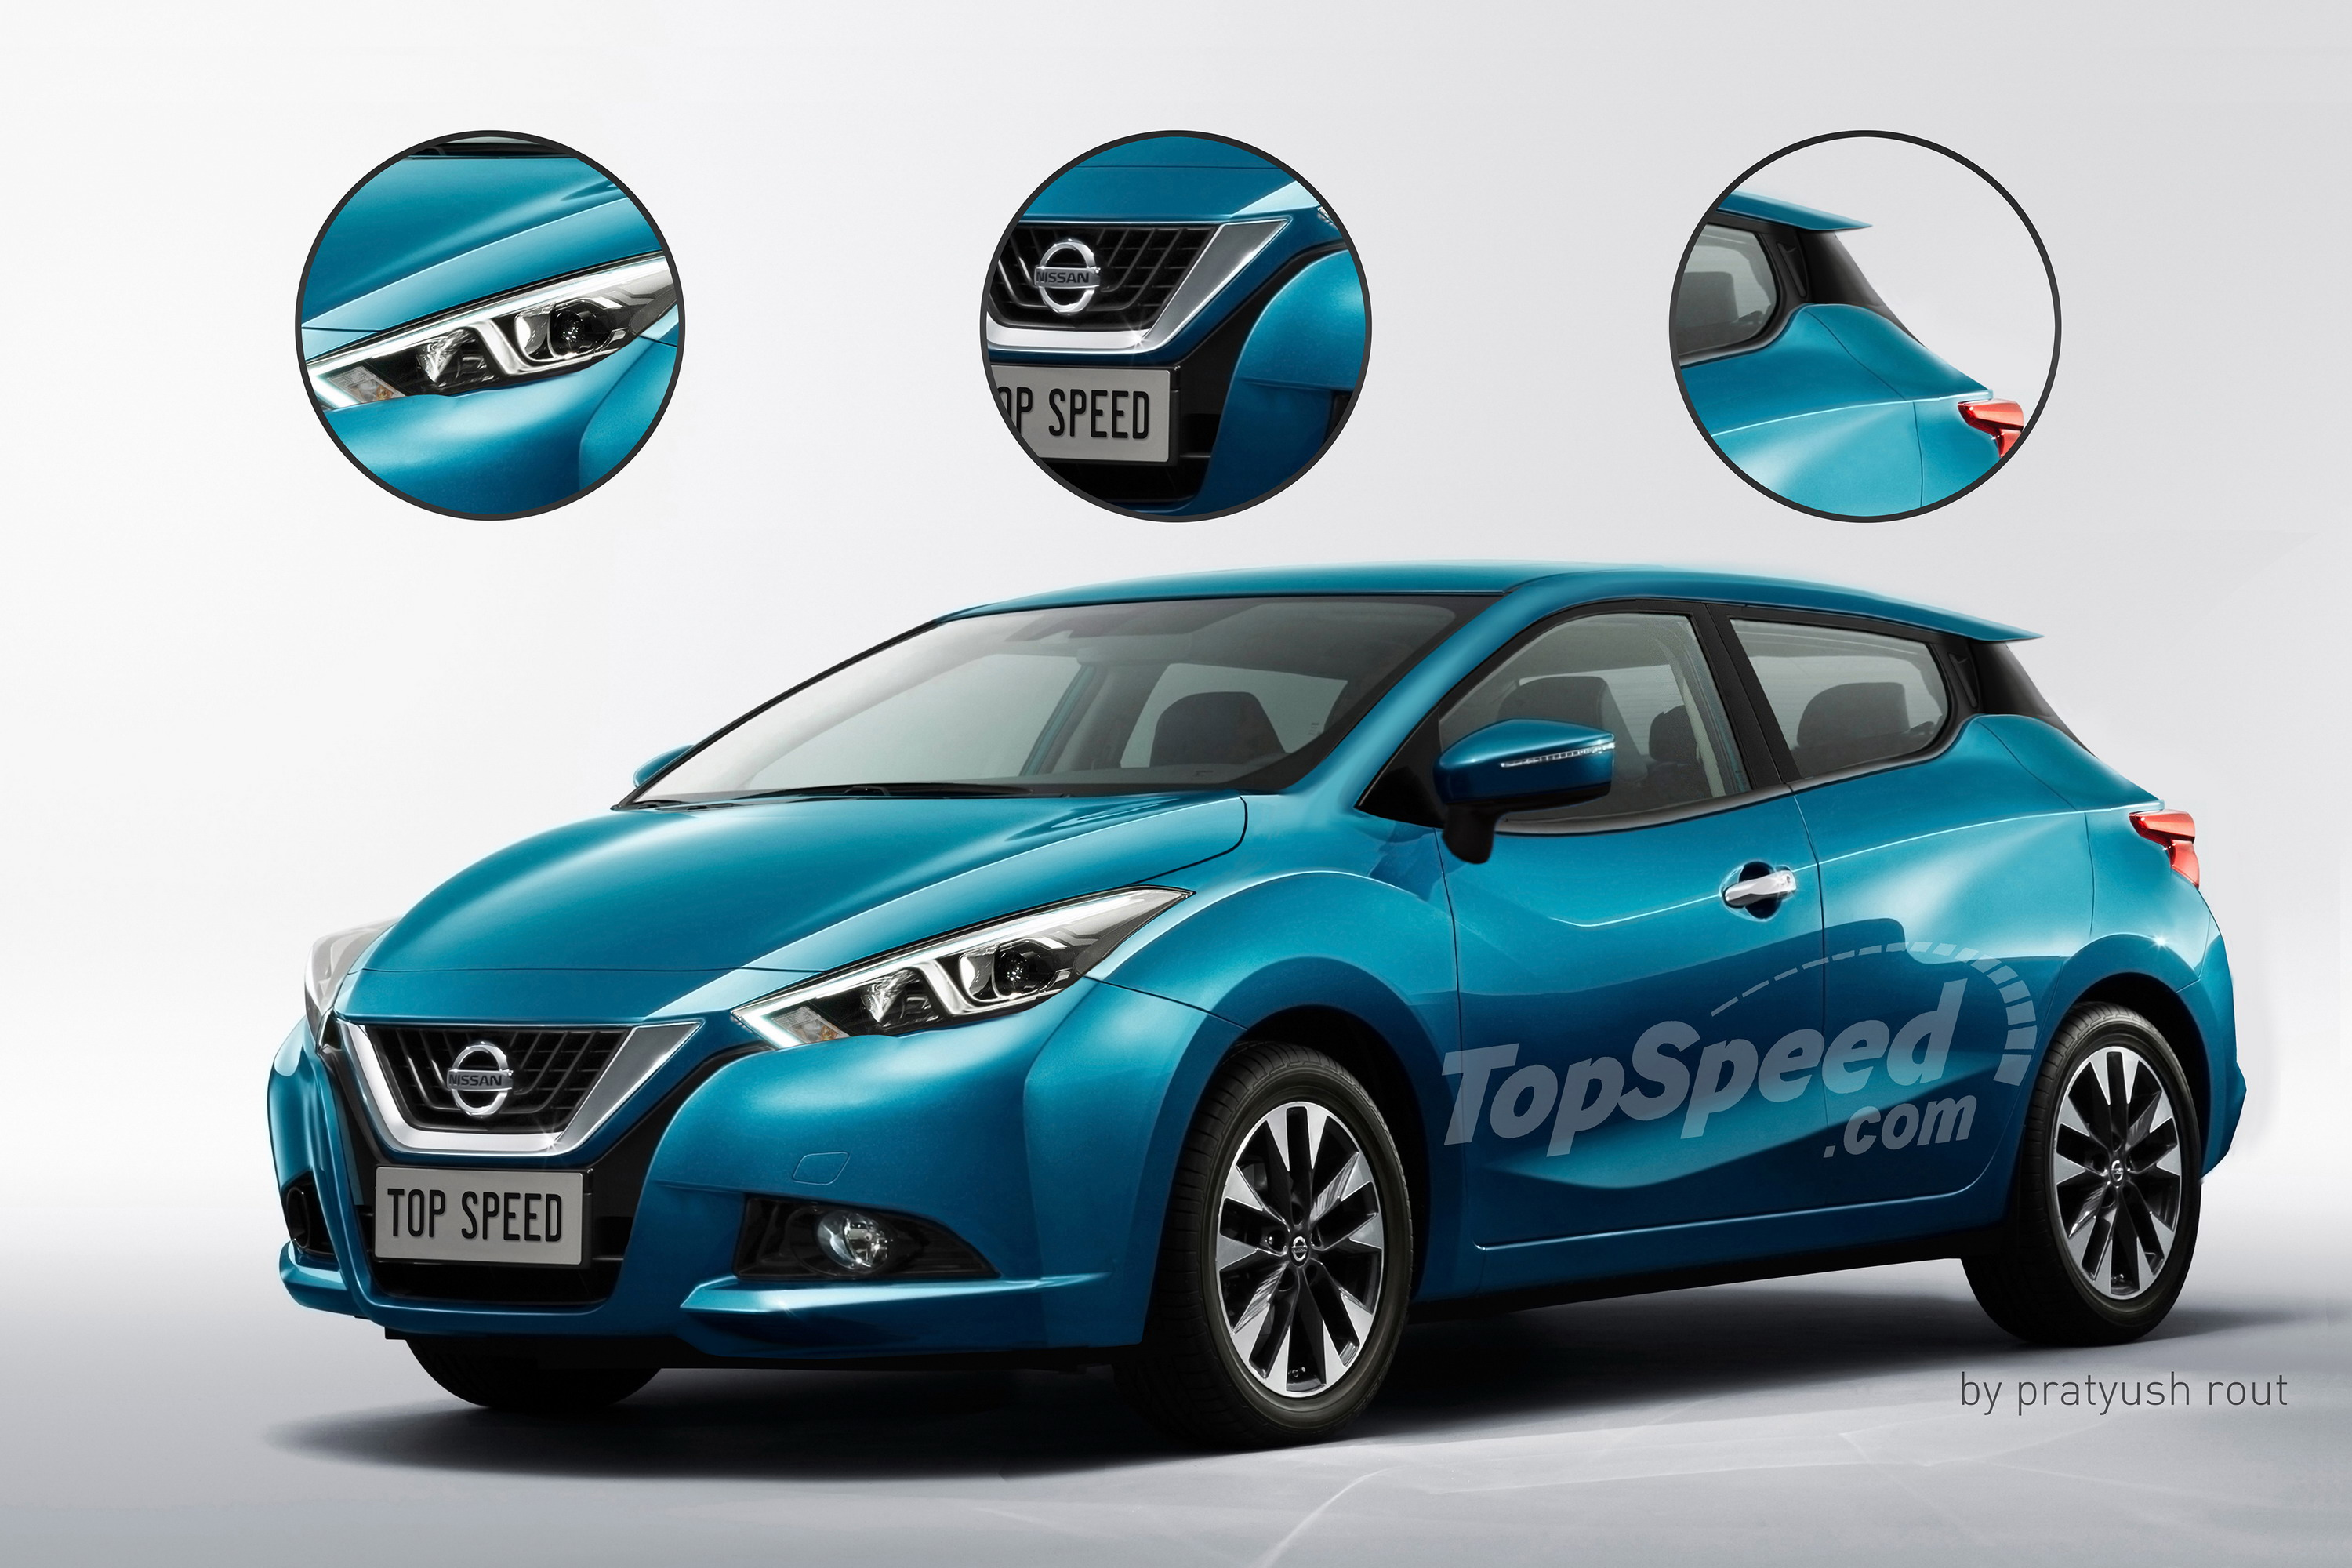 2017 Nissan Micra Top Speed Control Ac March